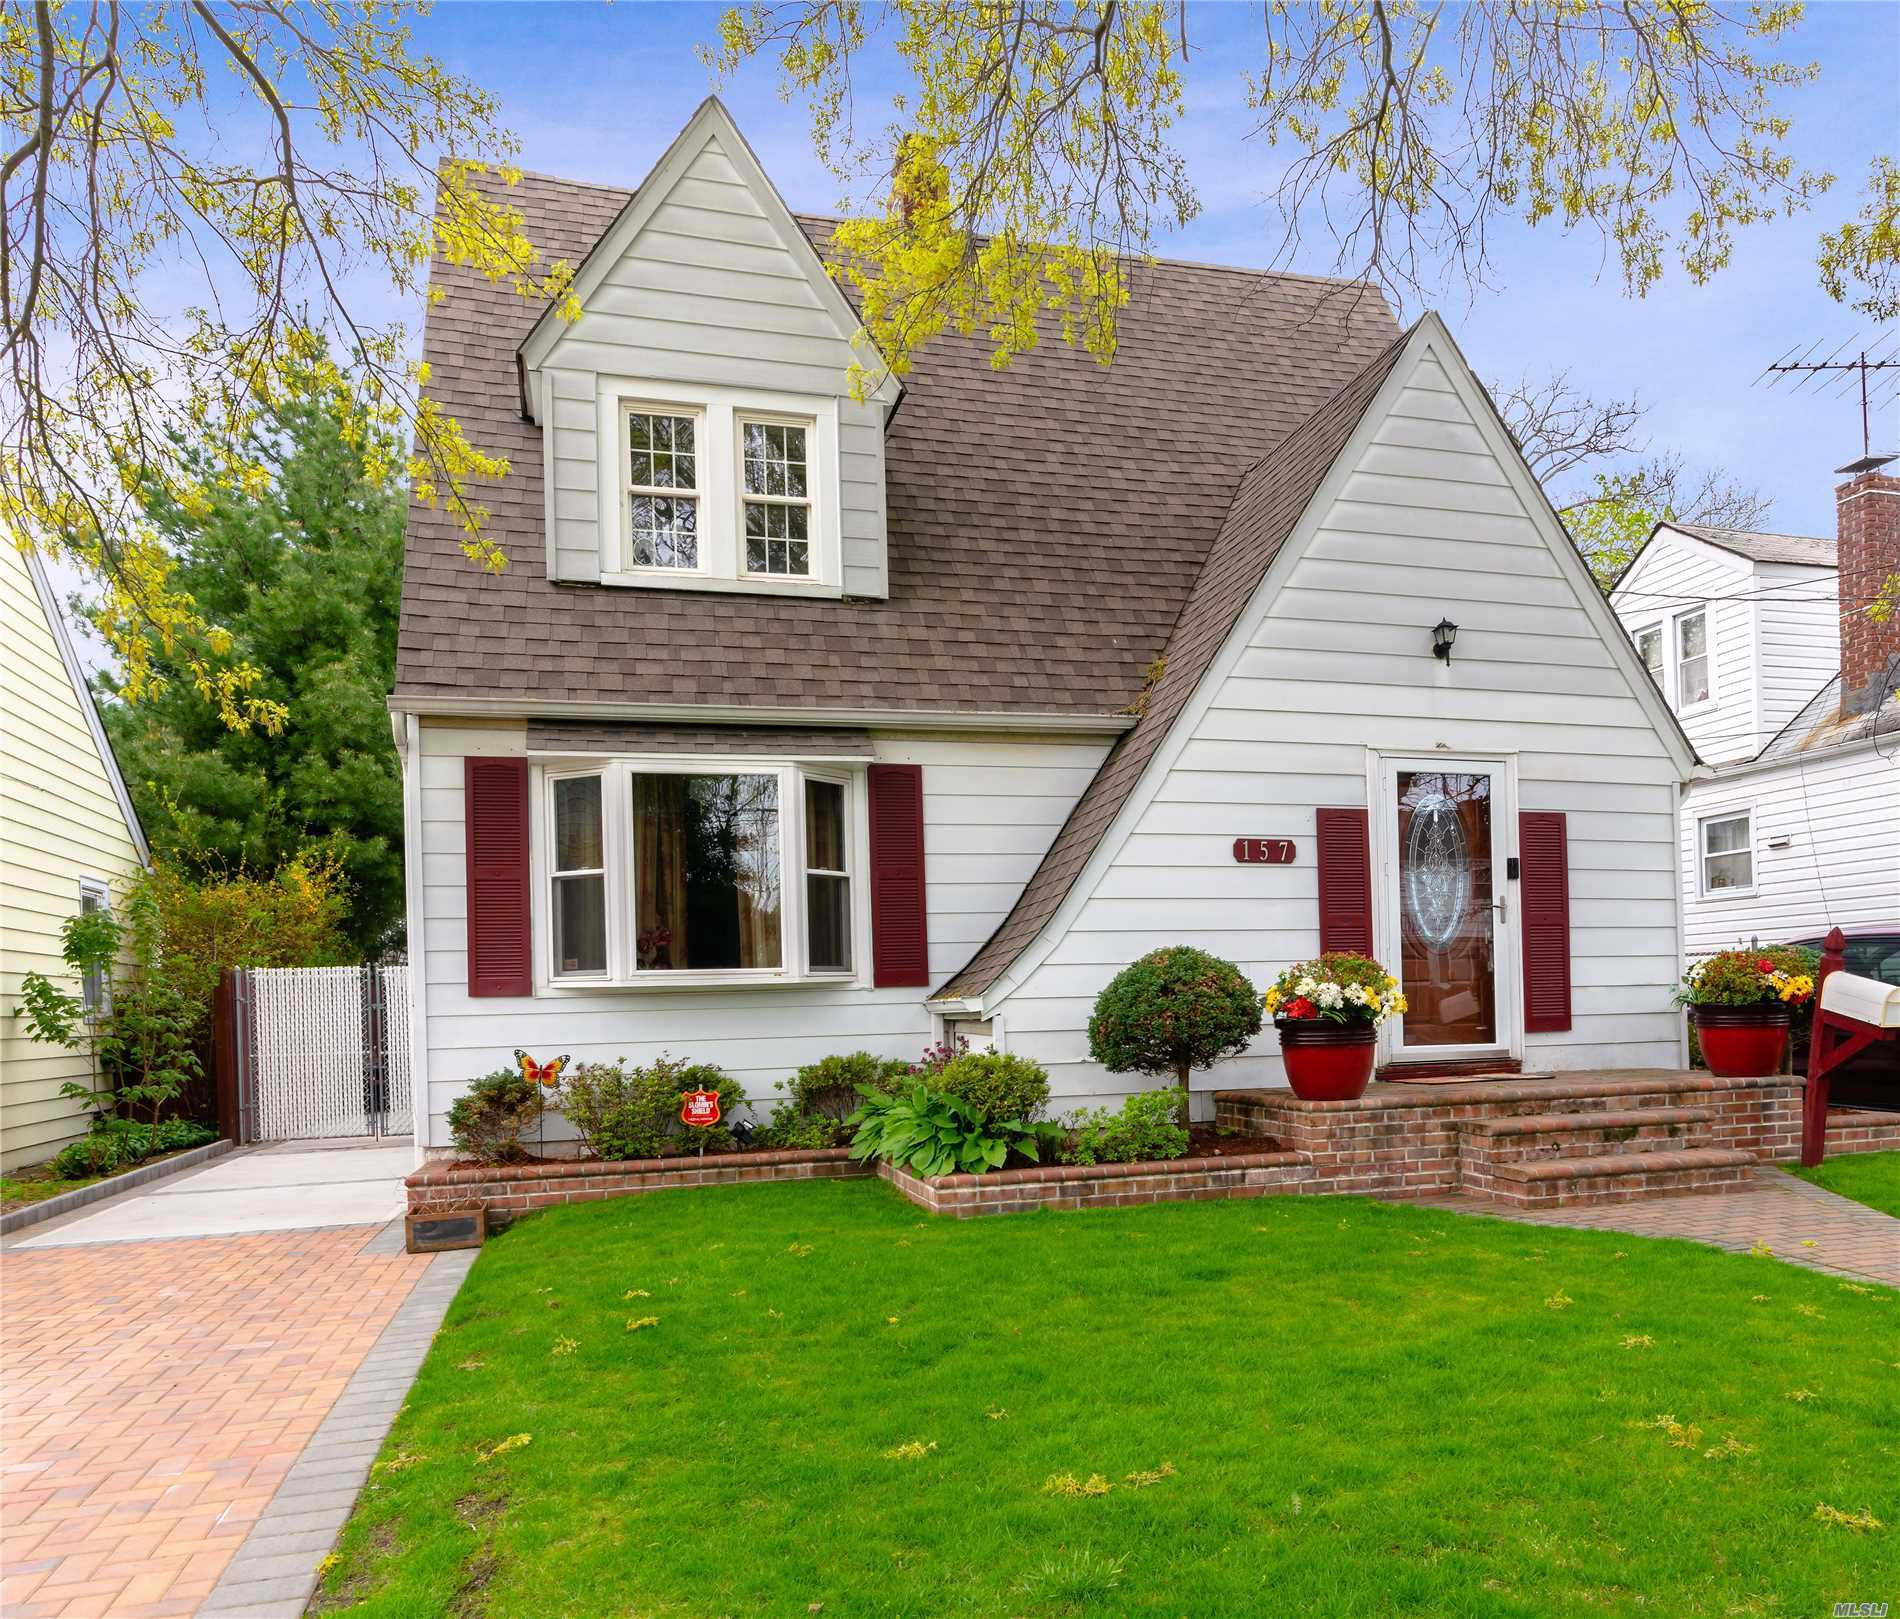 This Beautiful Tudor/Colonial nestled near to the Ingraham Estates area is in the Uniondale School District, and has many other desirable features. The LR has a wood burning FPL, & flows into the FDR which lead to the kitchen, & then out to the fabulous deck & backyard. H/W flooring throughout , 2 zone heating, 220 Amps electric, 7yrs young roof, Gas Heat & a finished basement are just some of the additional amenities that you will find in this perfect starter home or downsizing perfection.